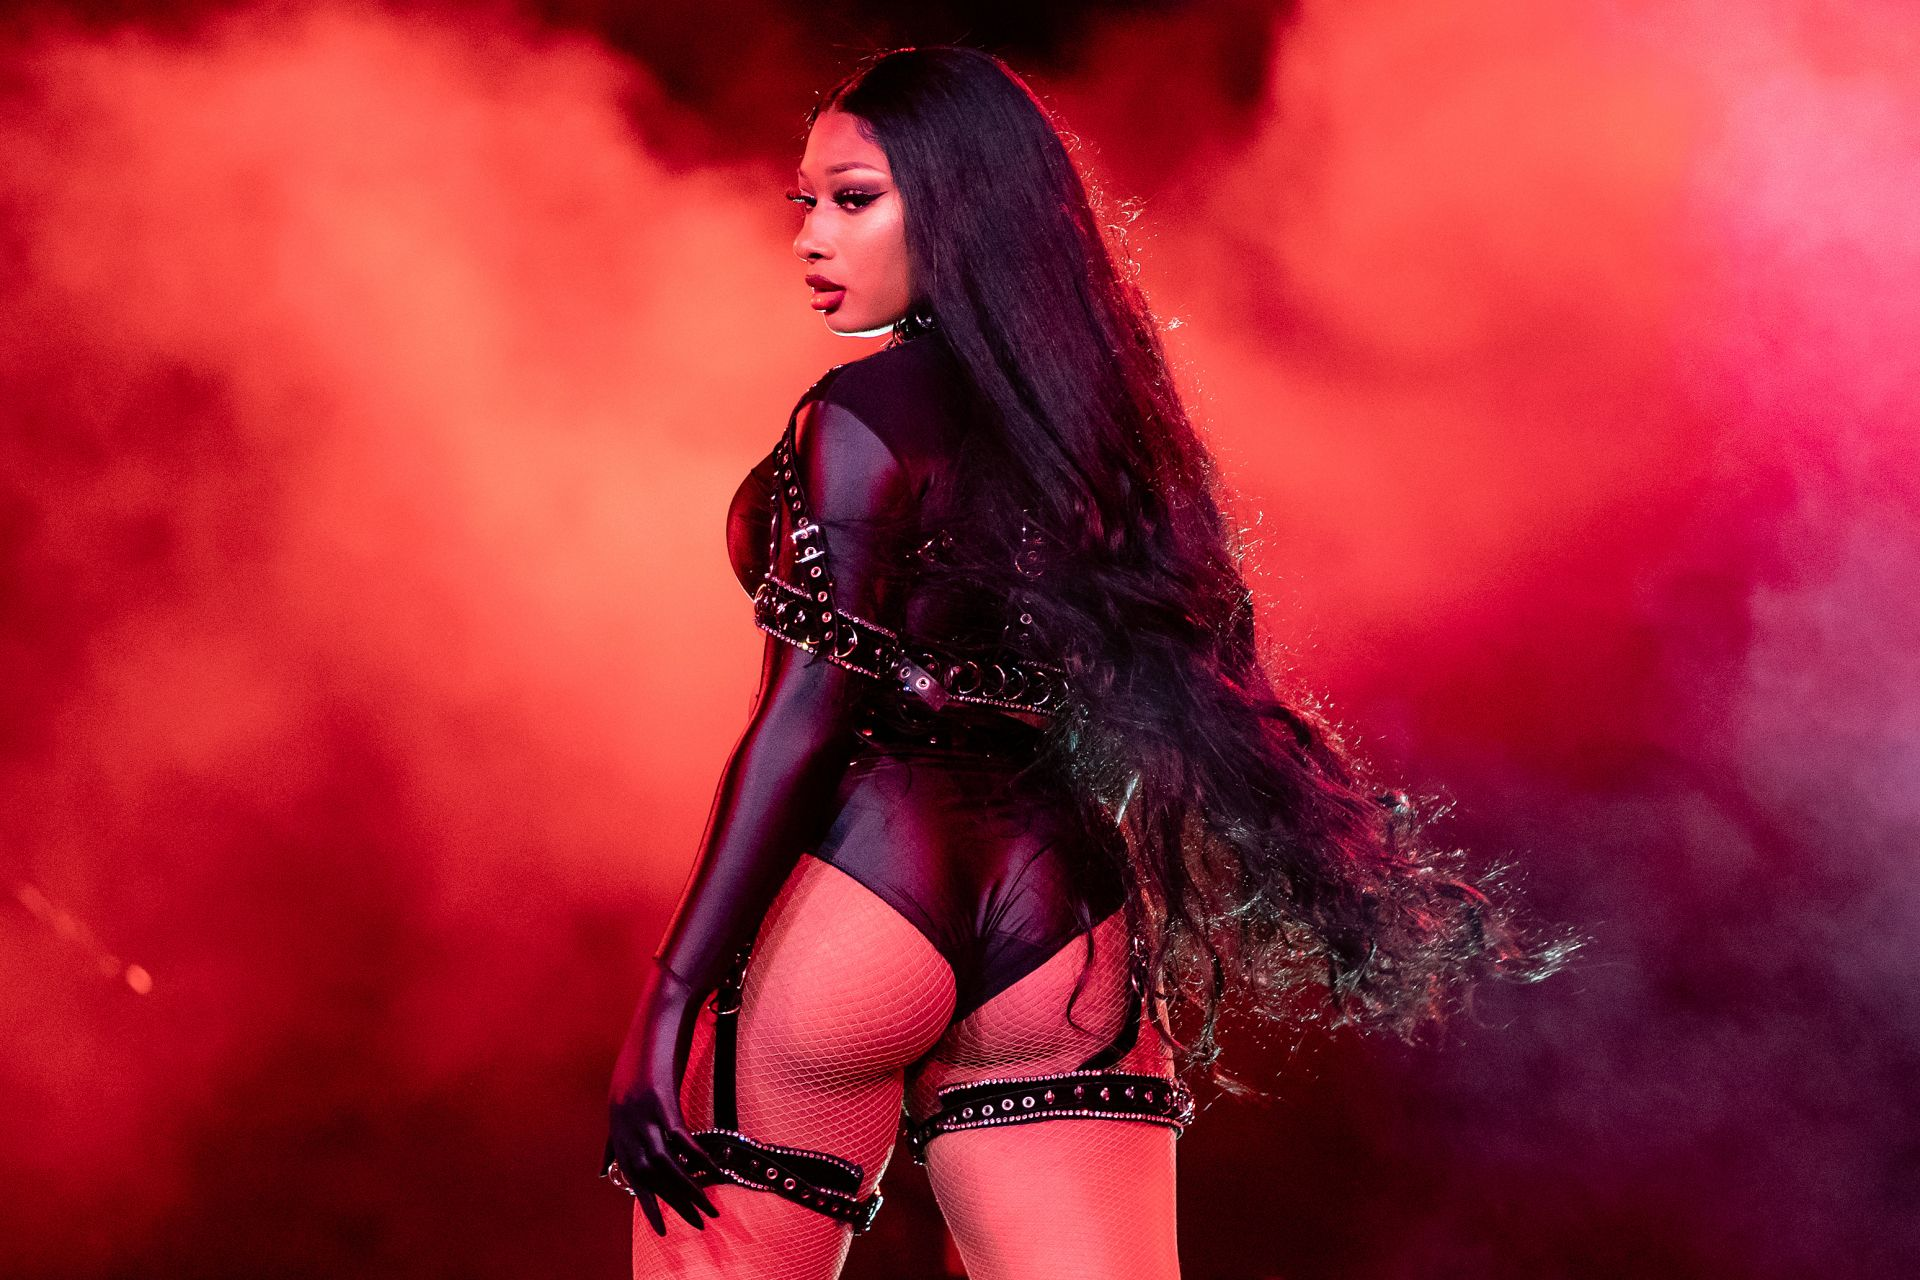 Megan Three Stallion